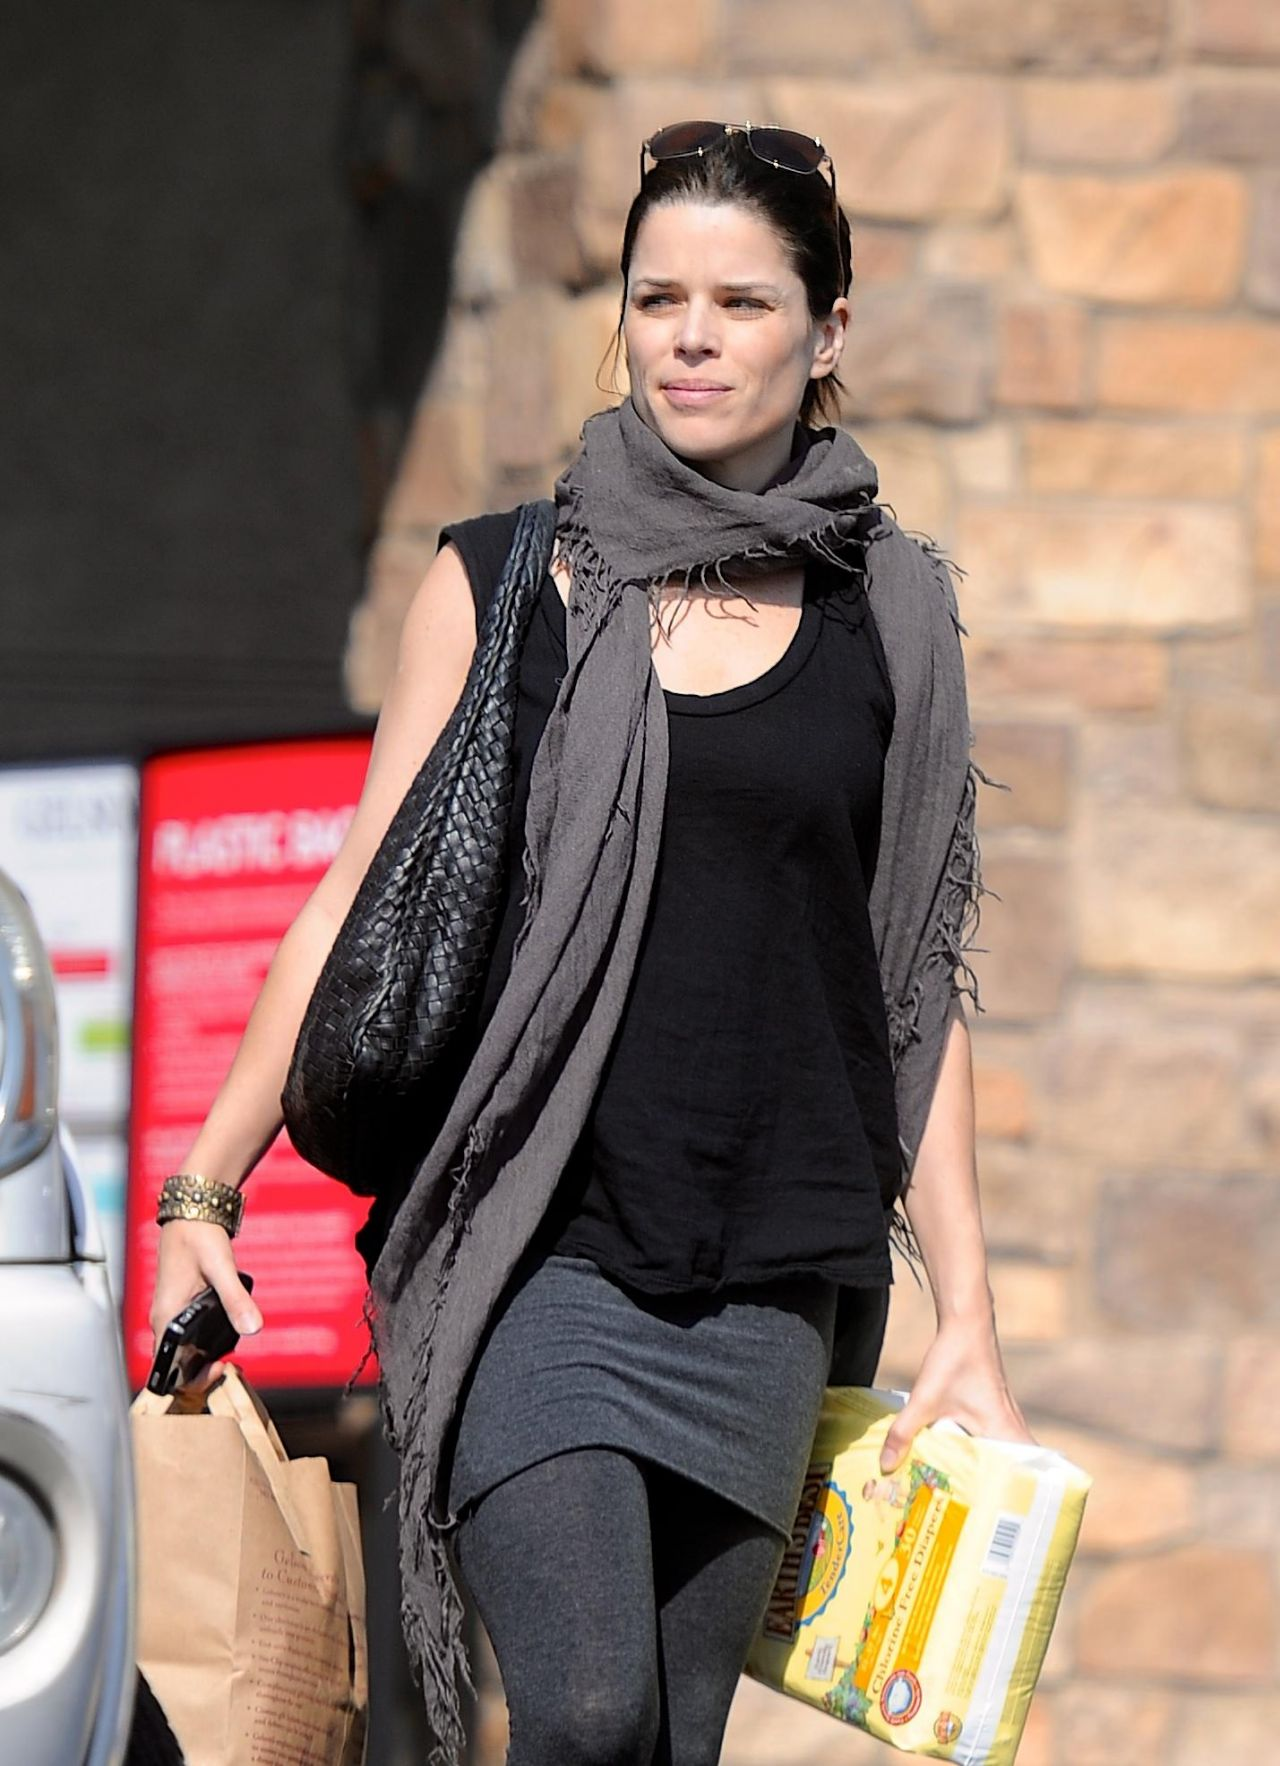 Neve Campbell Street Style - Shopping in Los Angeles, February 2014